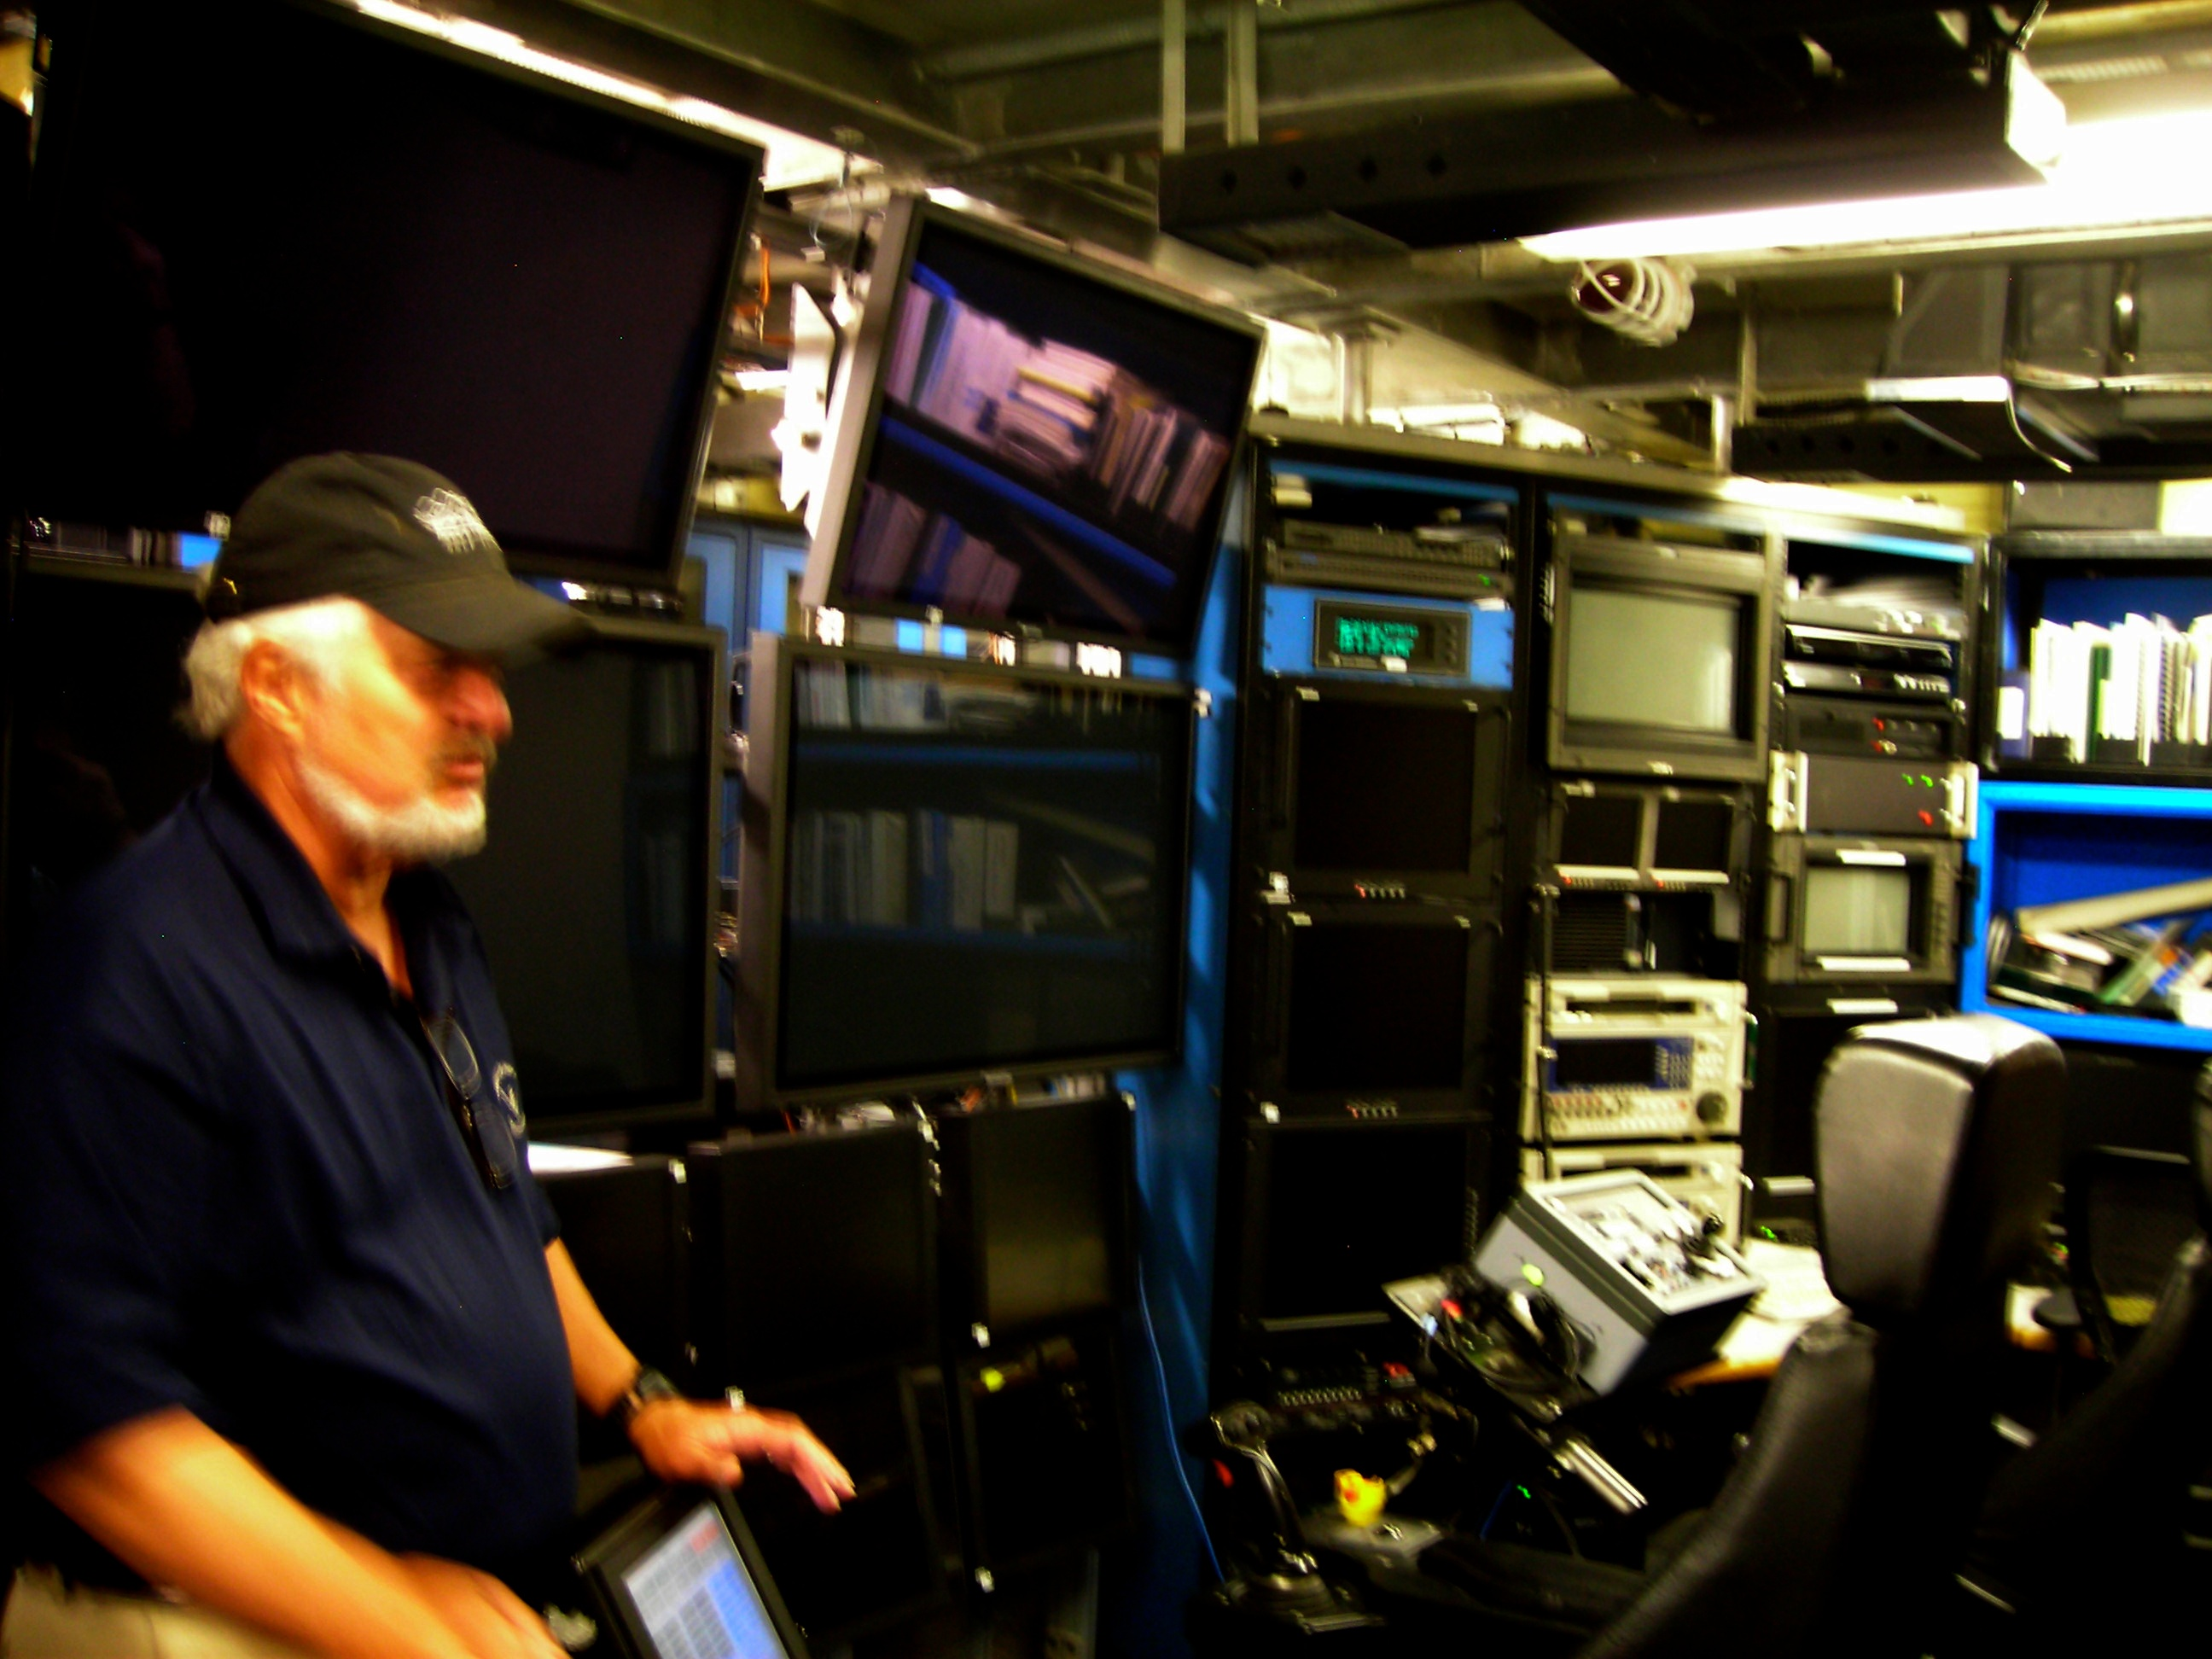 The ROV control room for the <em>Western Flyer</em> with Steve Etchemendy, director of marine operations for MBARI